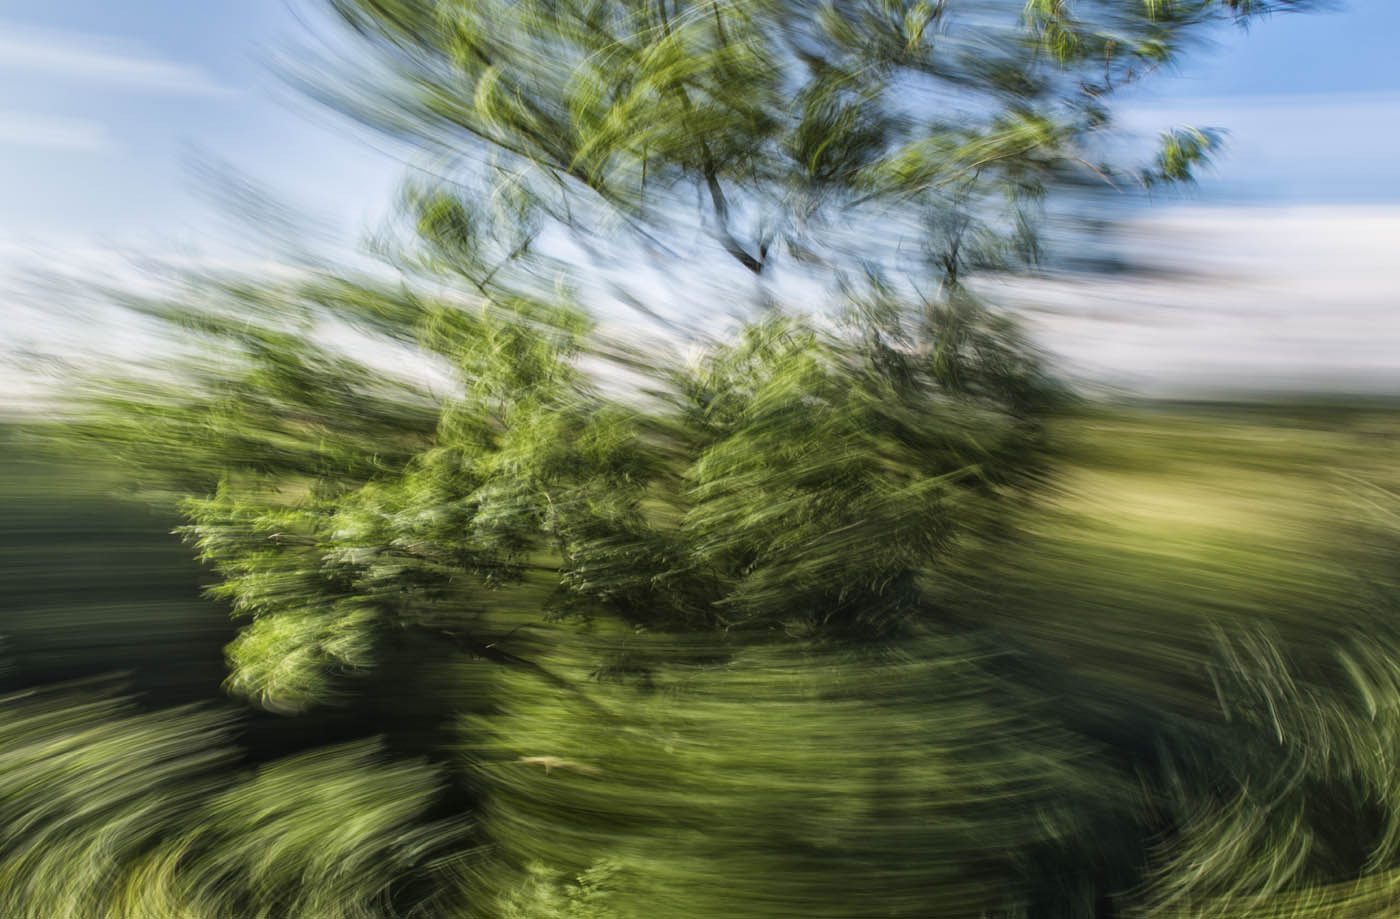 Photograph Spinning nature by daniel vojtech on 500px